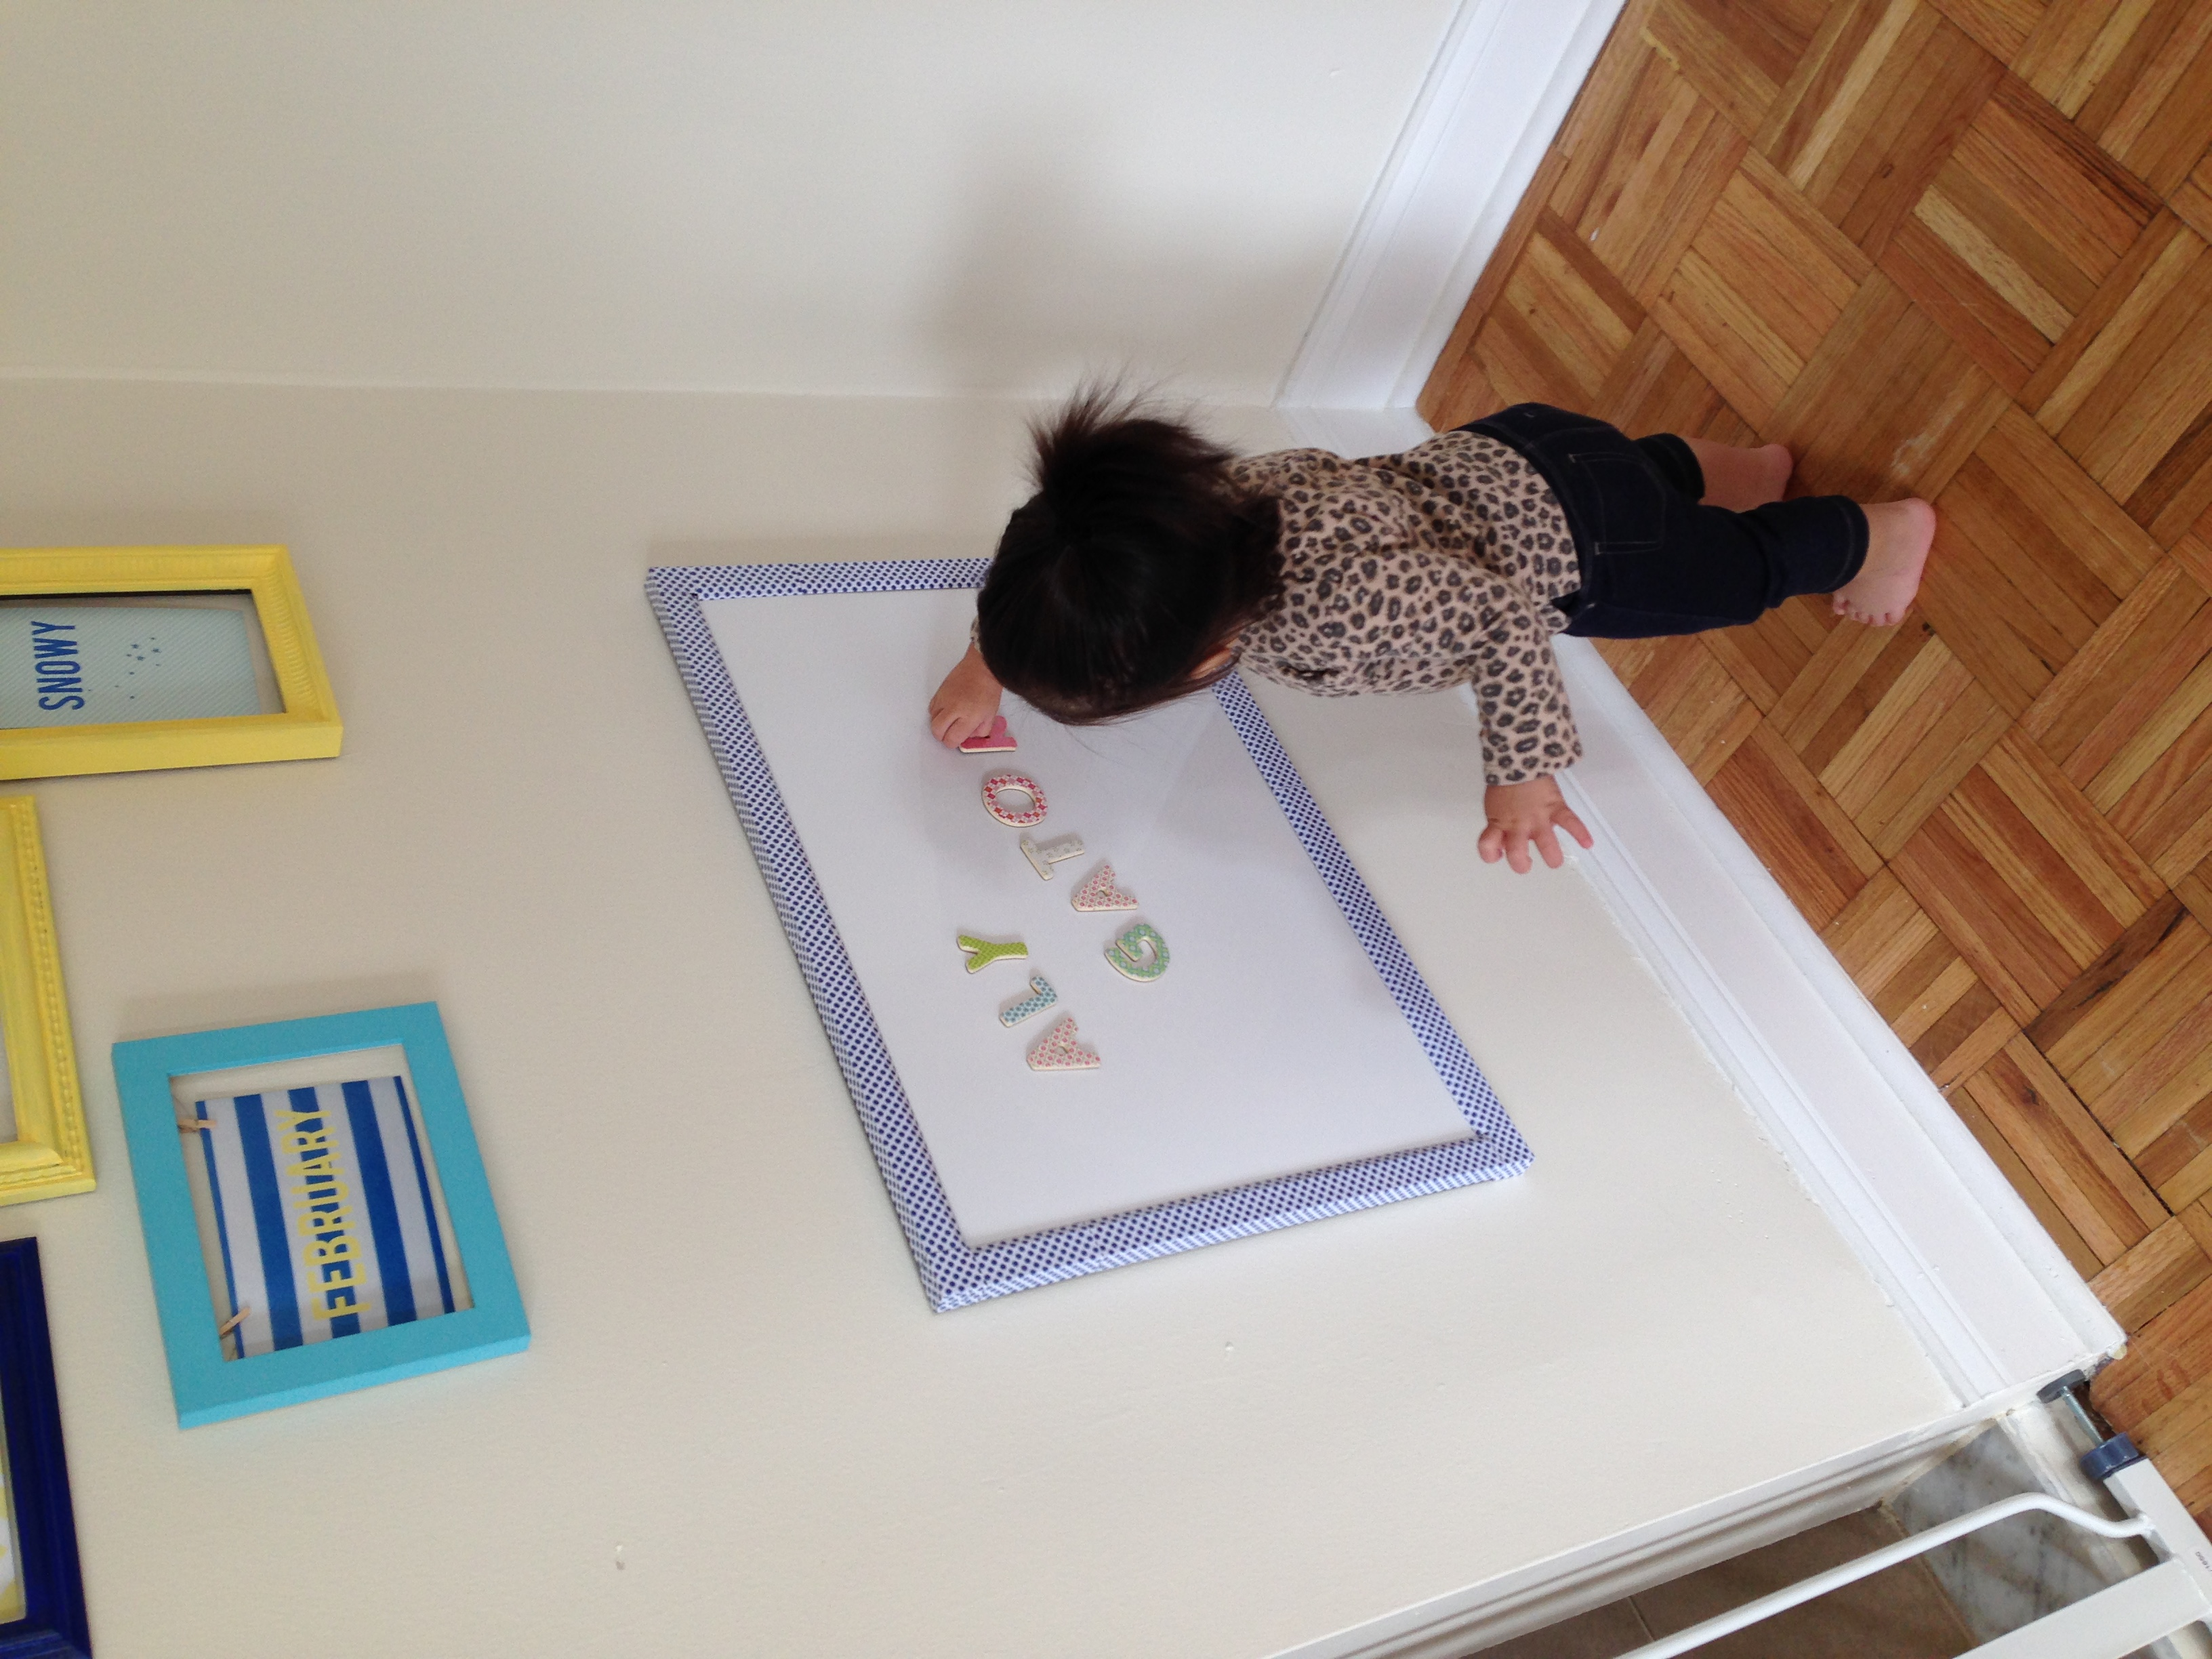 This dry erase/magnet board has been a huge hit! I showed Alynne how to use magnets once and she was hooked! She plays with them every day!